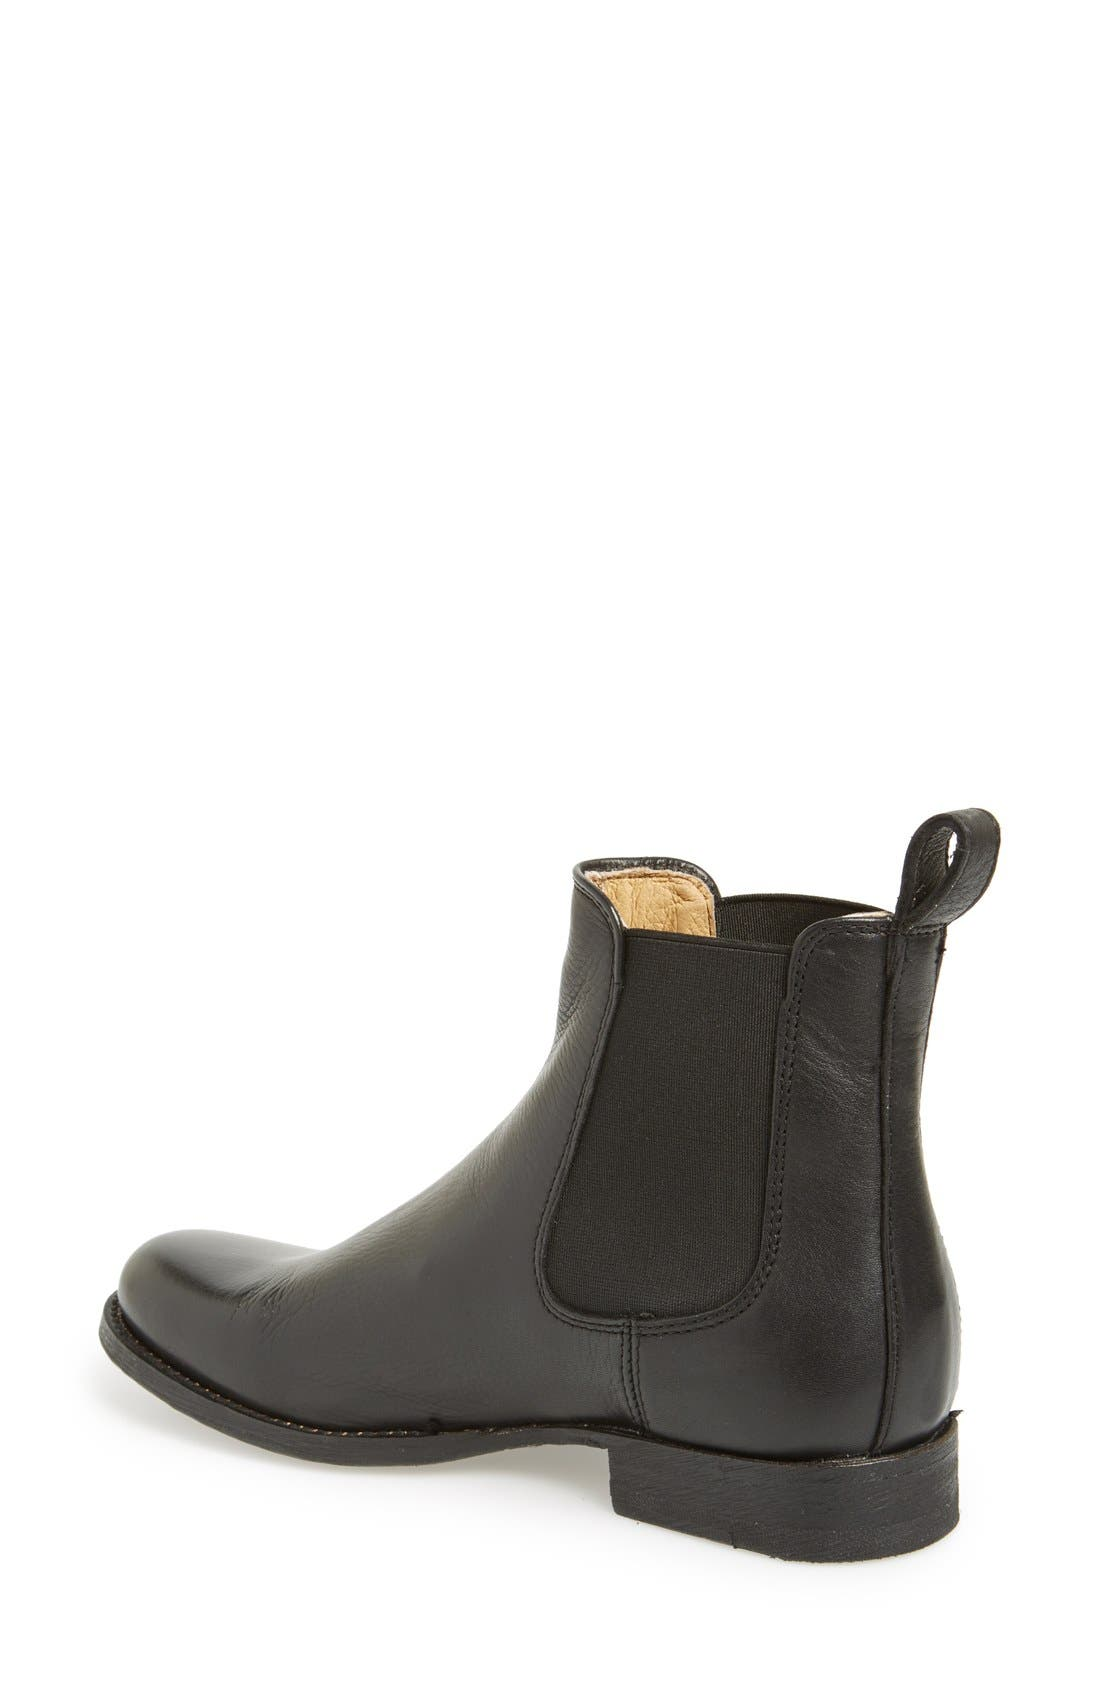 Alternate Image 2  - Frye 'Erin' Leather Chelsea Boot (Women)